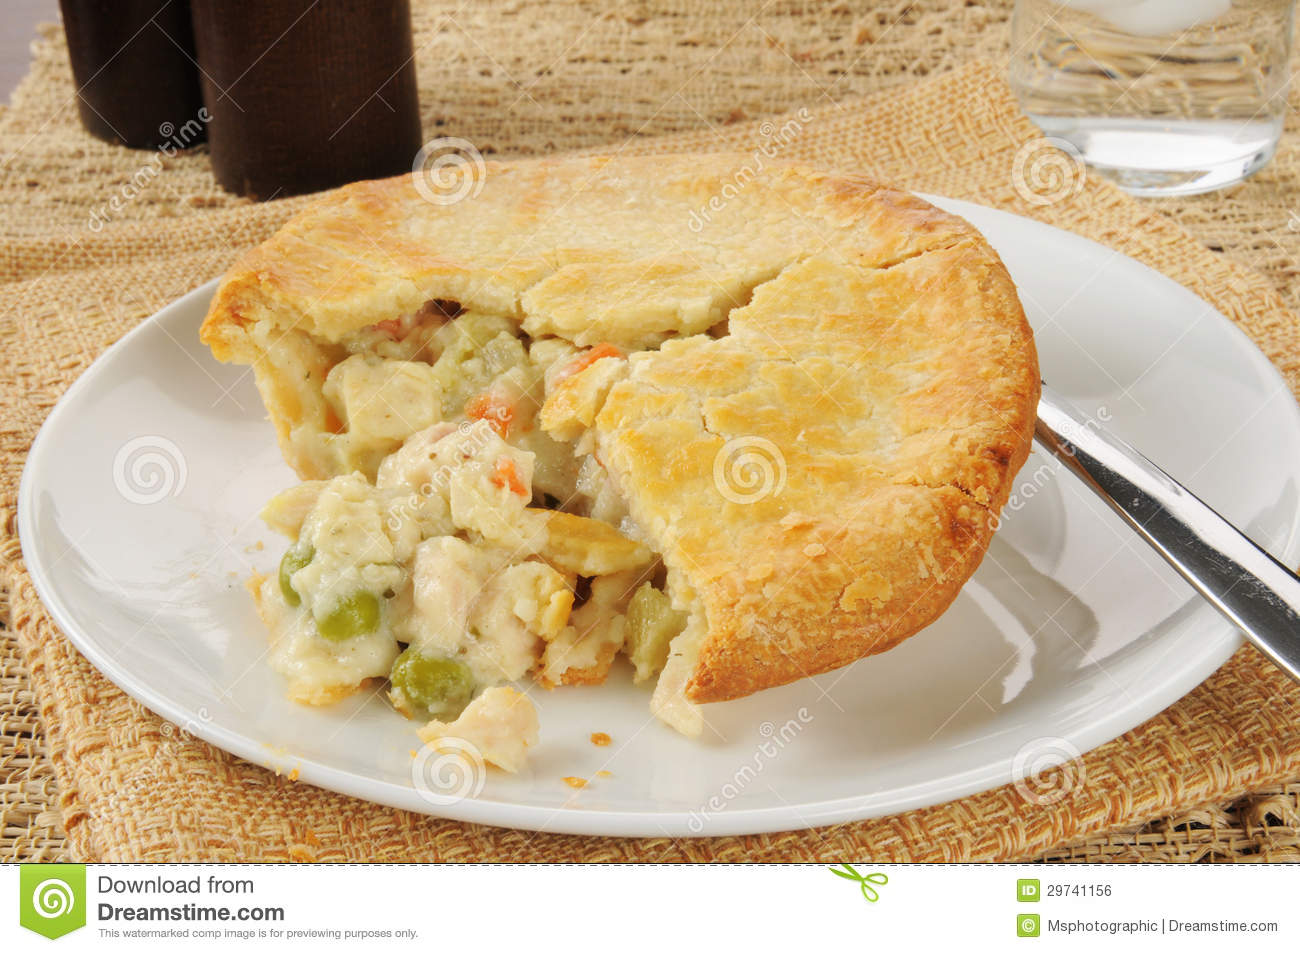 Chicken pot pie with a bite taken out.